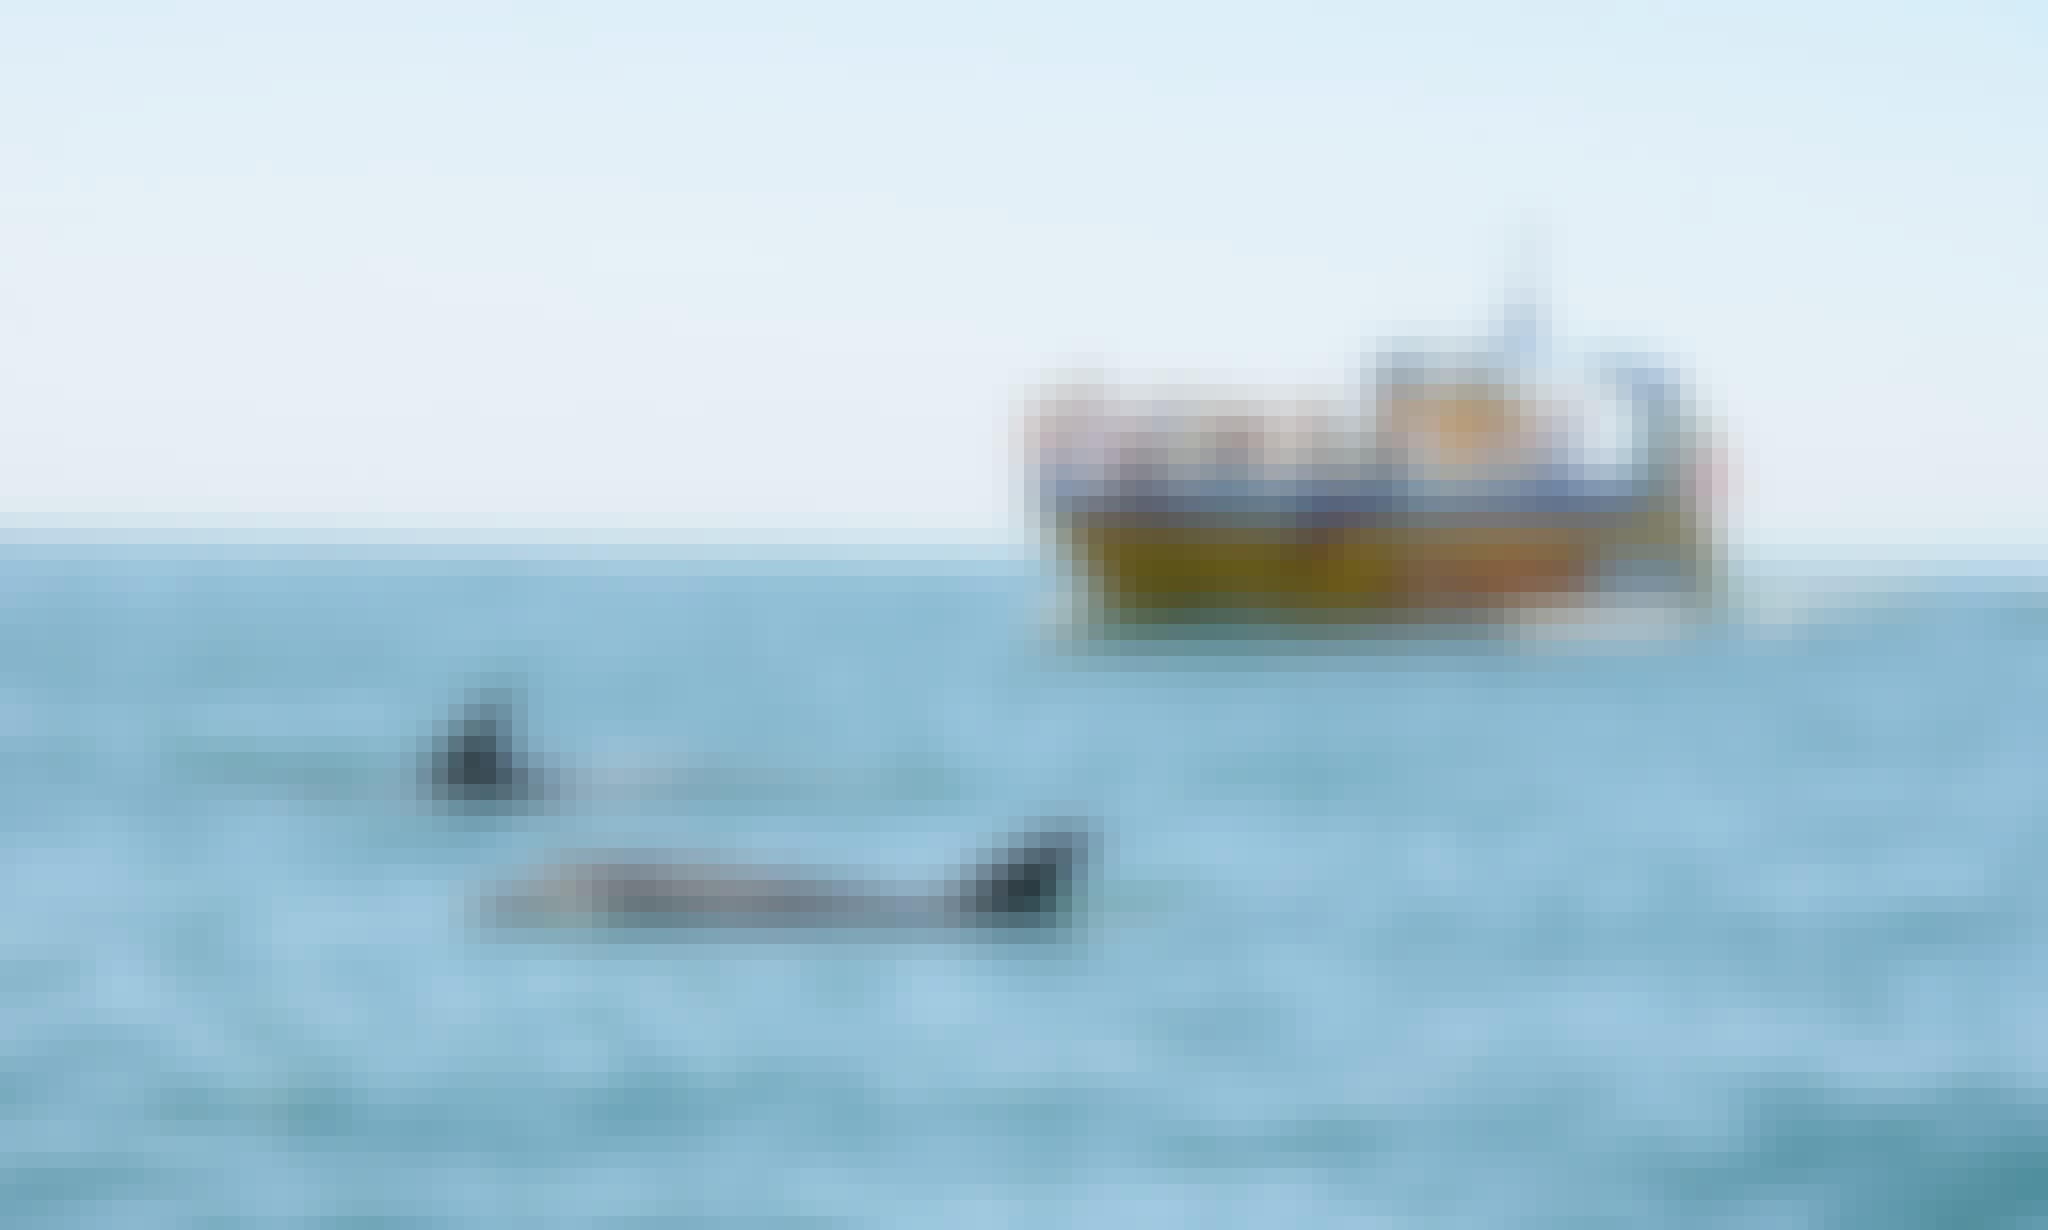 2 hours Dolphin Watch in Muscat, Oman